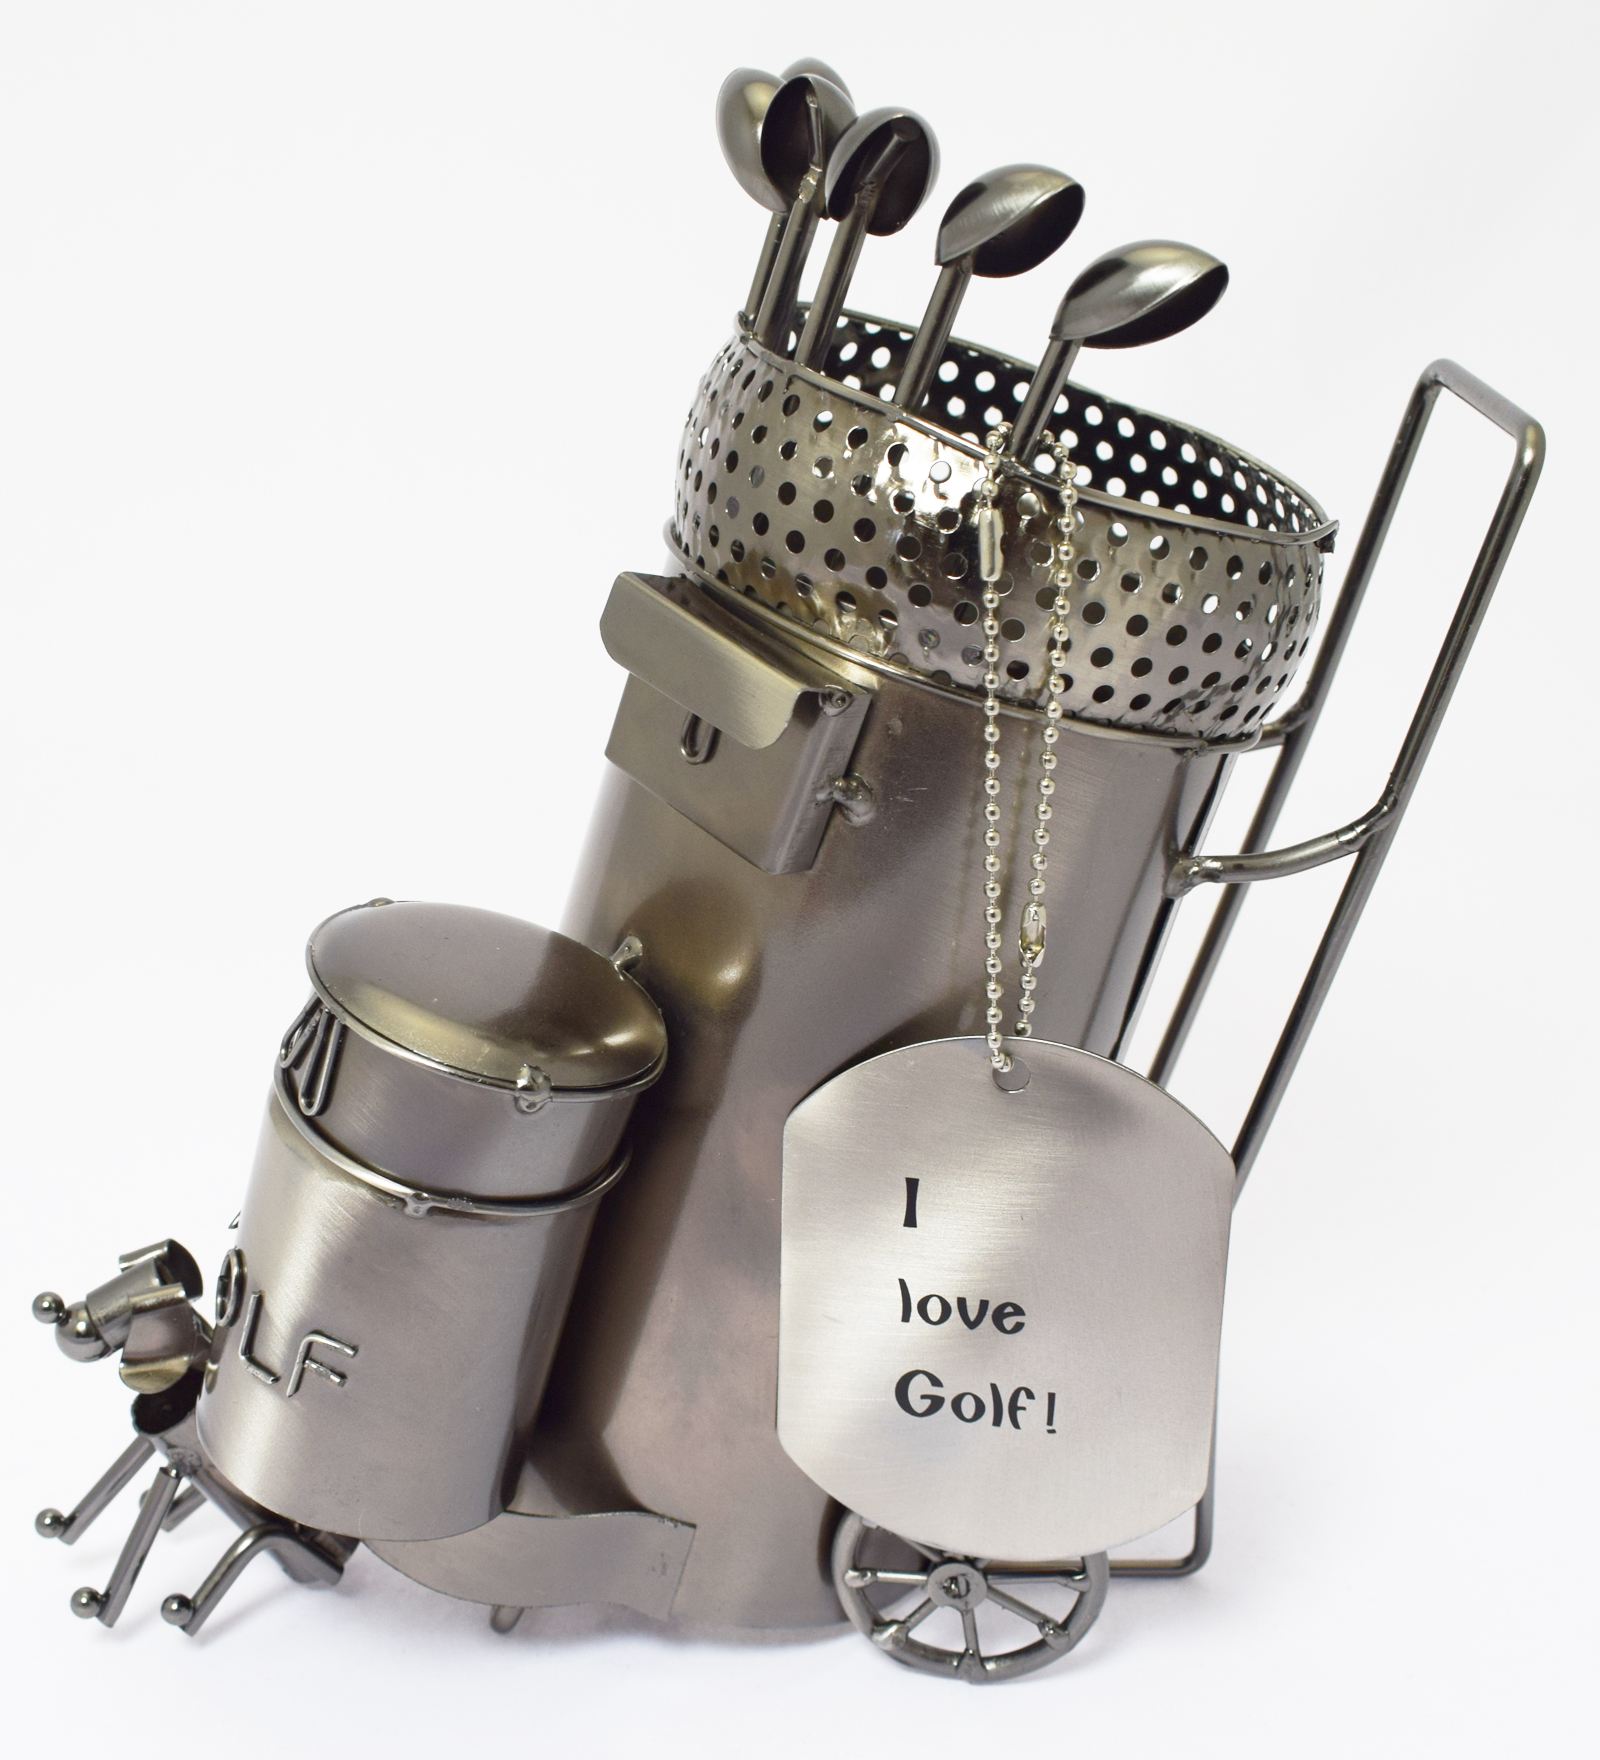 Funny Wine Bottle Holders Novelty Metal Wine Bottle Holder Golf Caddy With Dog Clubs